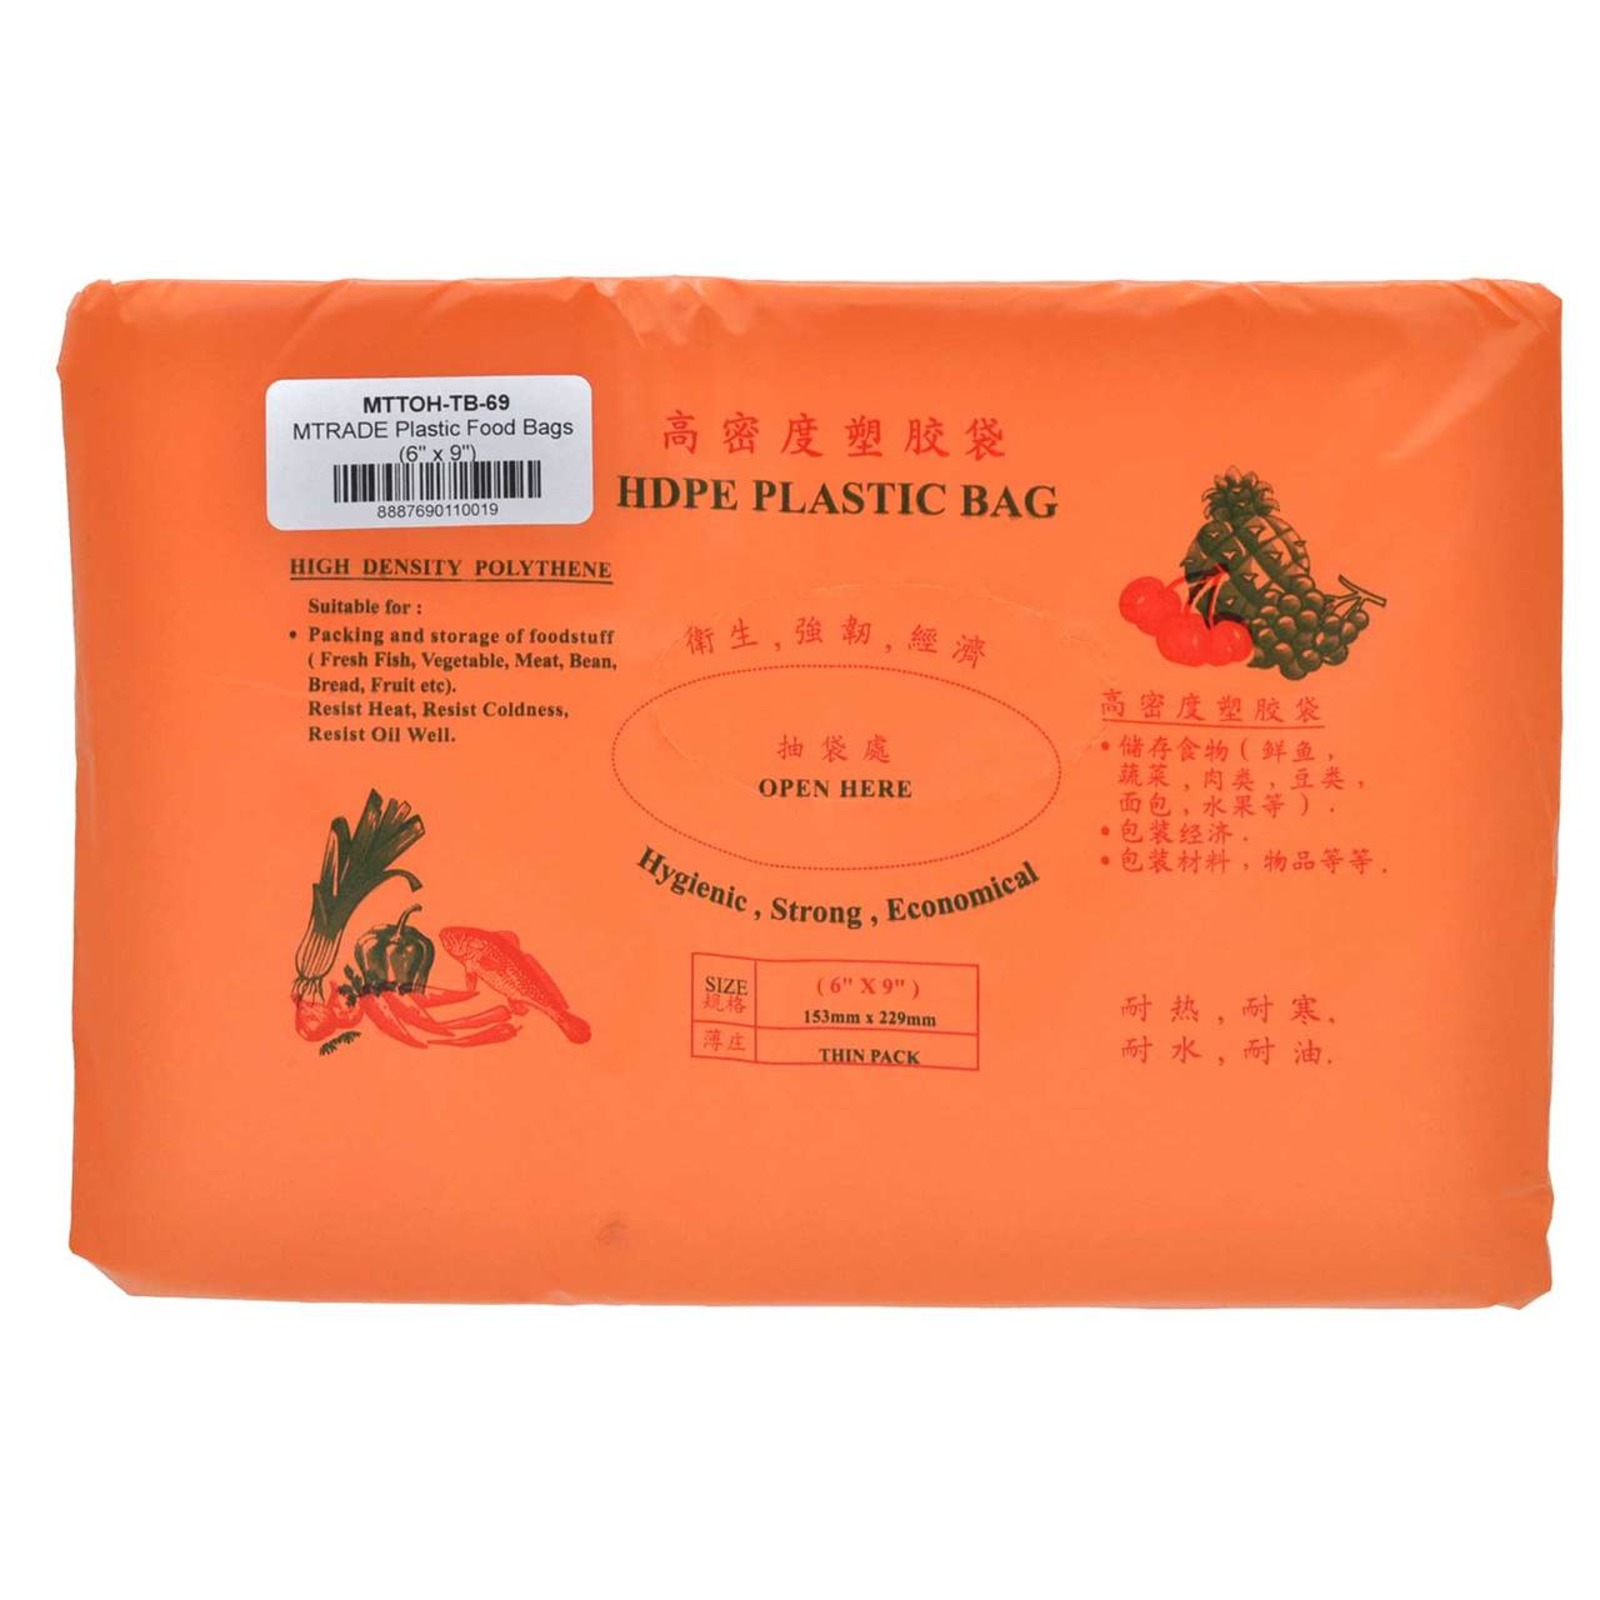 MTRADE Plastic Food Bags (6 Inch x 9 Inch)